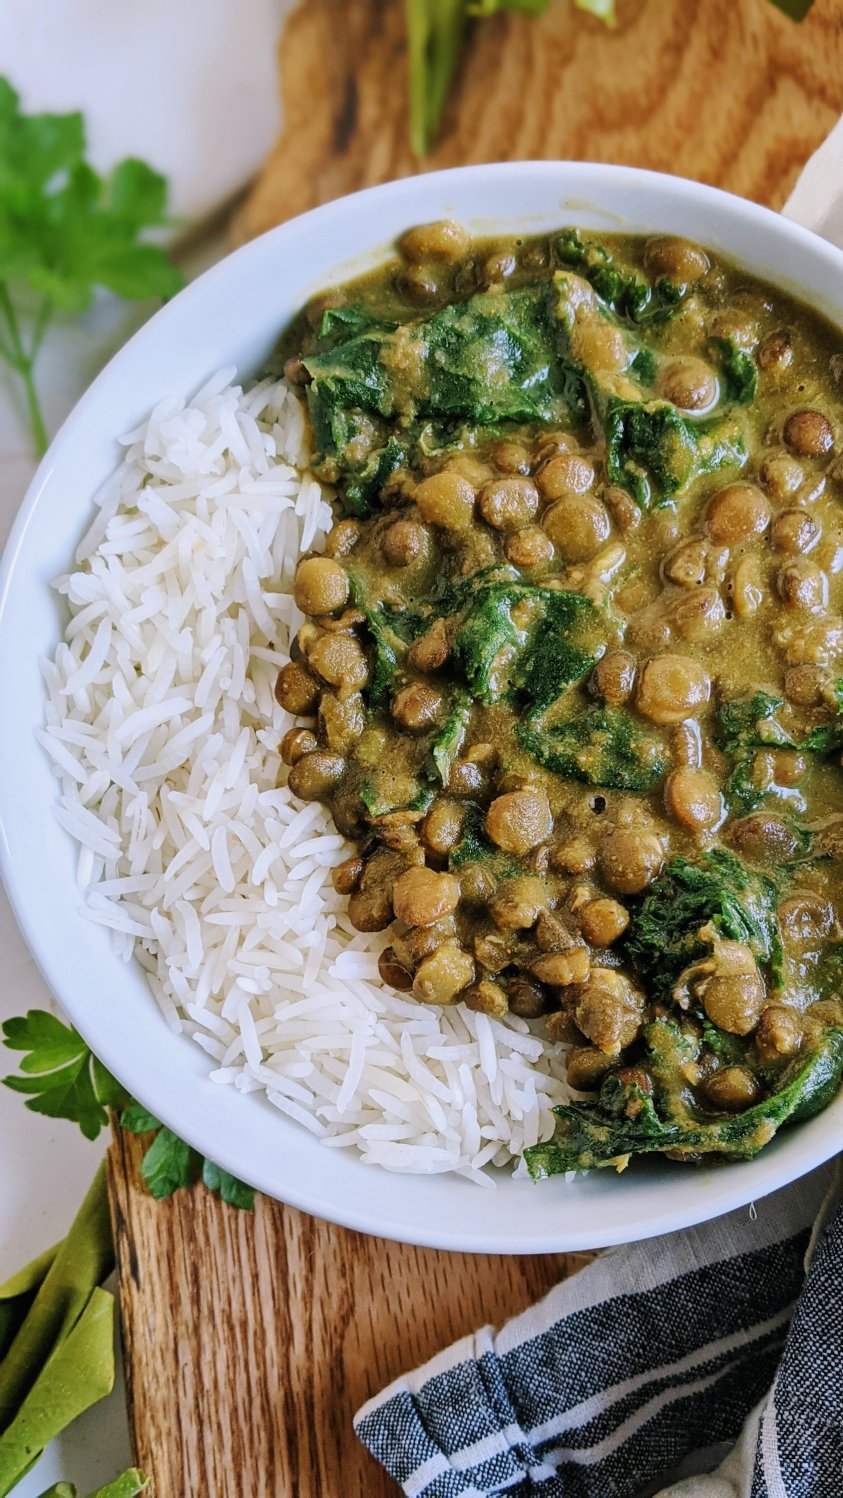 curried lentils recipe vegan gluten free healthy high protein lentil curry coconut milk recipes non dairy free curries with lentils and kale or spinach saag or kale